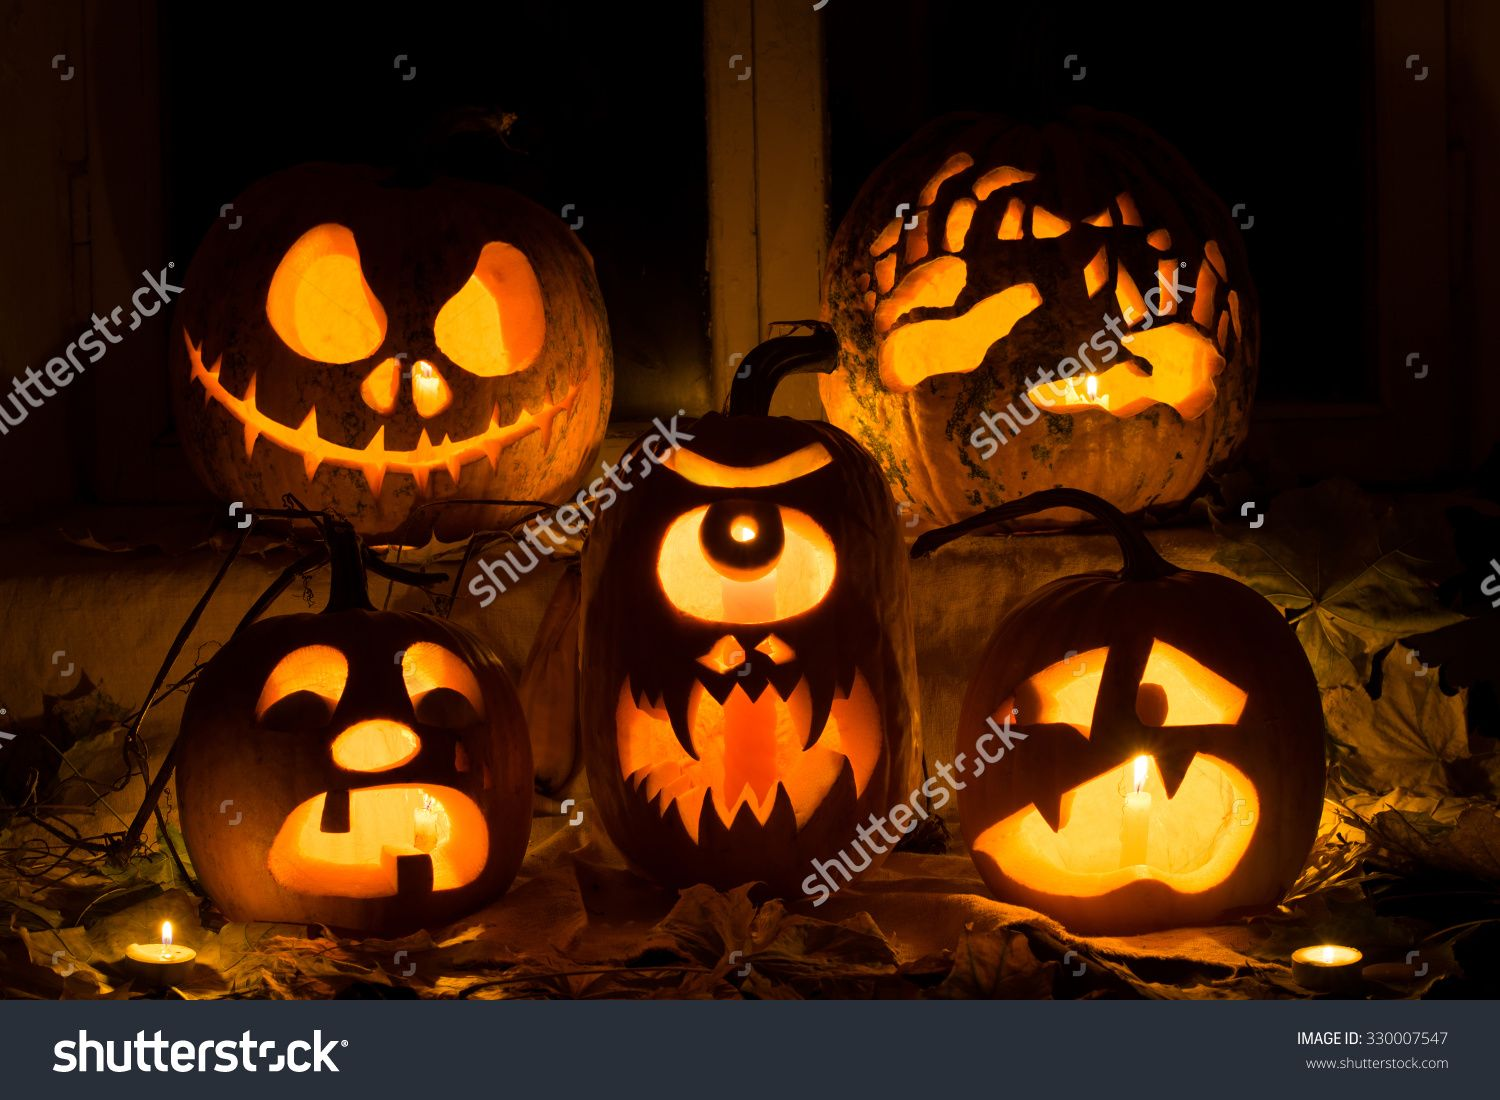 Photo Composition From Five Pumpkins For Halloween. Jack, Hands, Crying, A Cyclops And Frightened Pumpkins Against Autumn Leaves And Candles - 330007547 : Shutterstock